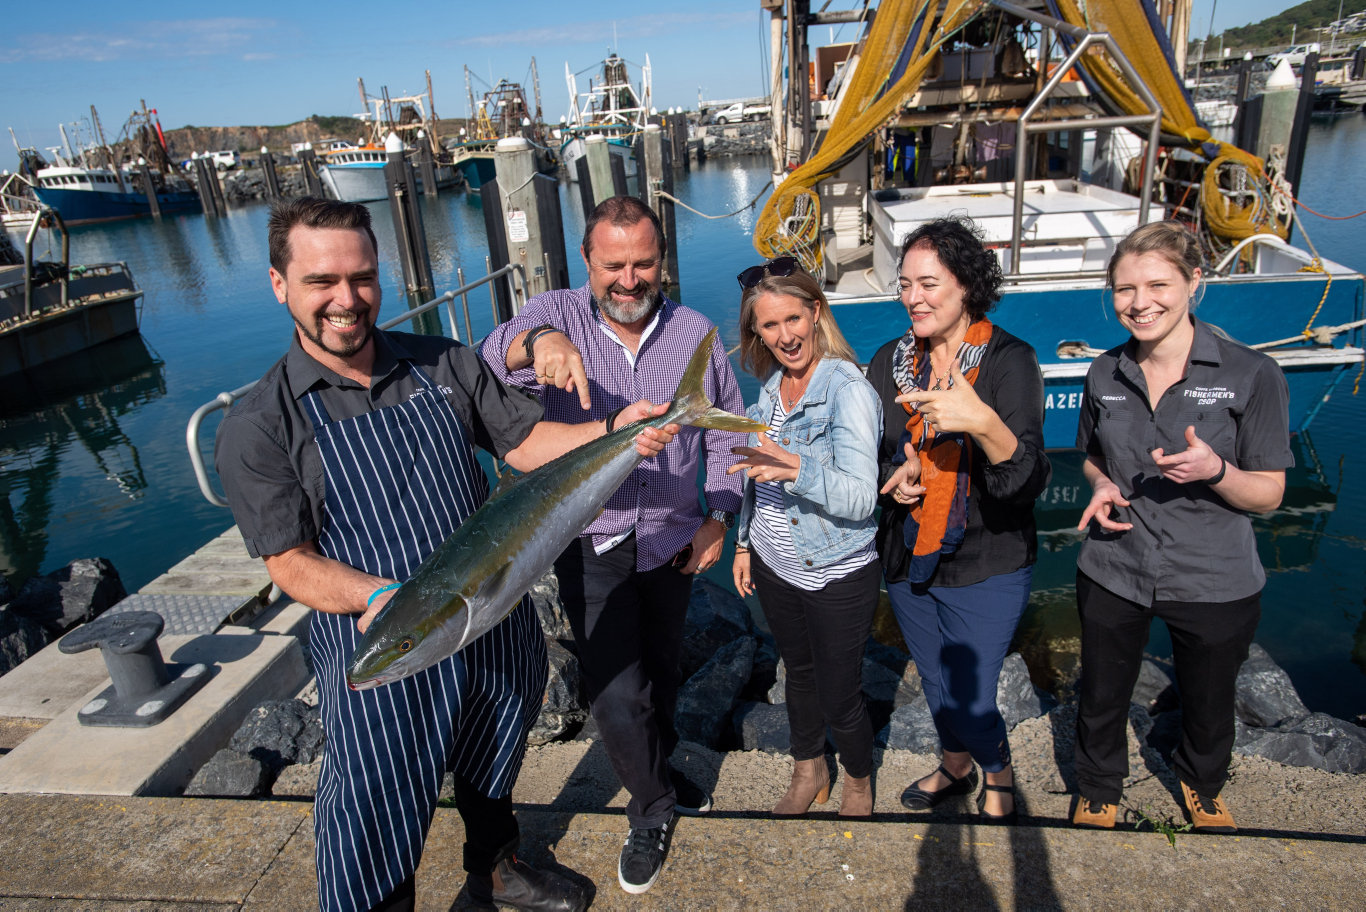 Ocean Harvest Festival organisers Carl Mower and Sherry Price from Another Tasty Event, Nicole McLennan from Coffs Harbour City Council with Joshua Cook and Bec Wilson from the Coffs Harbour Fishermen's Co-op.